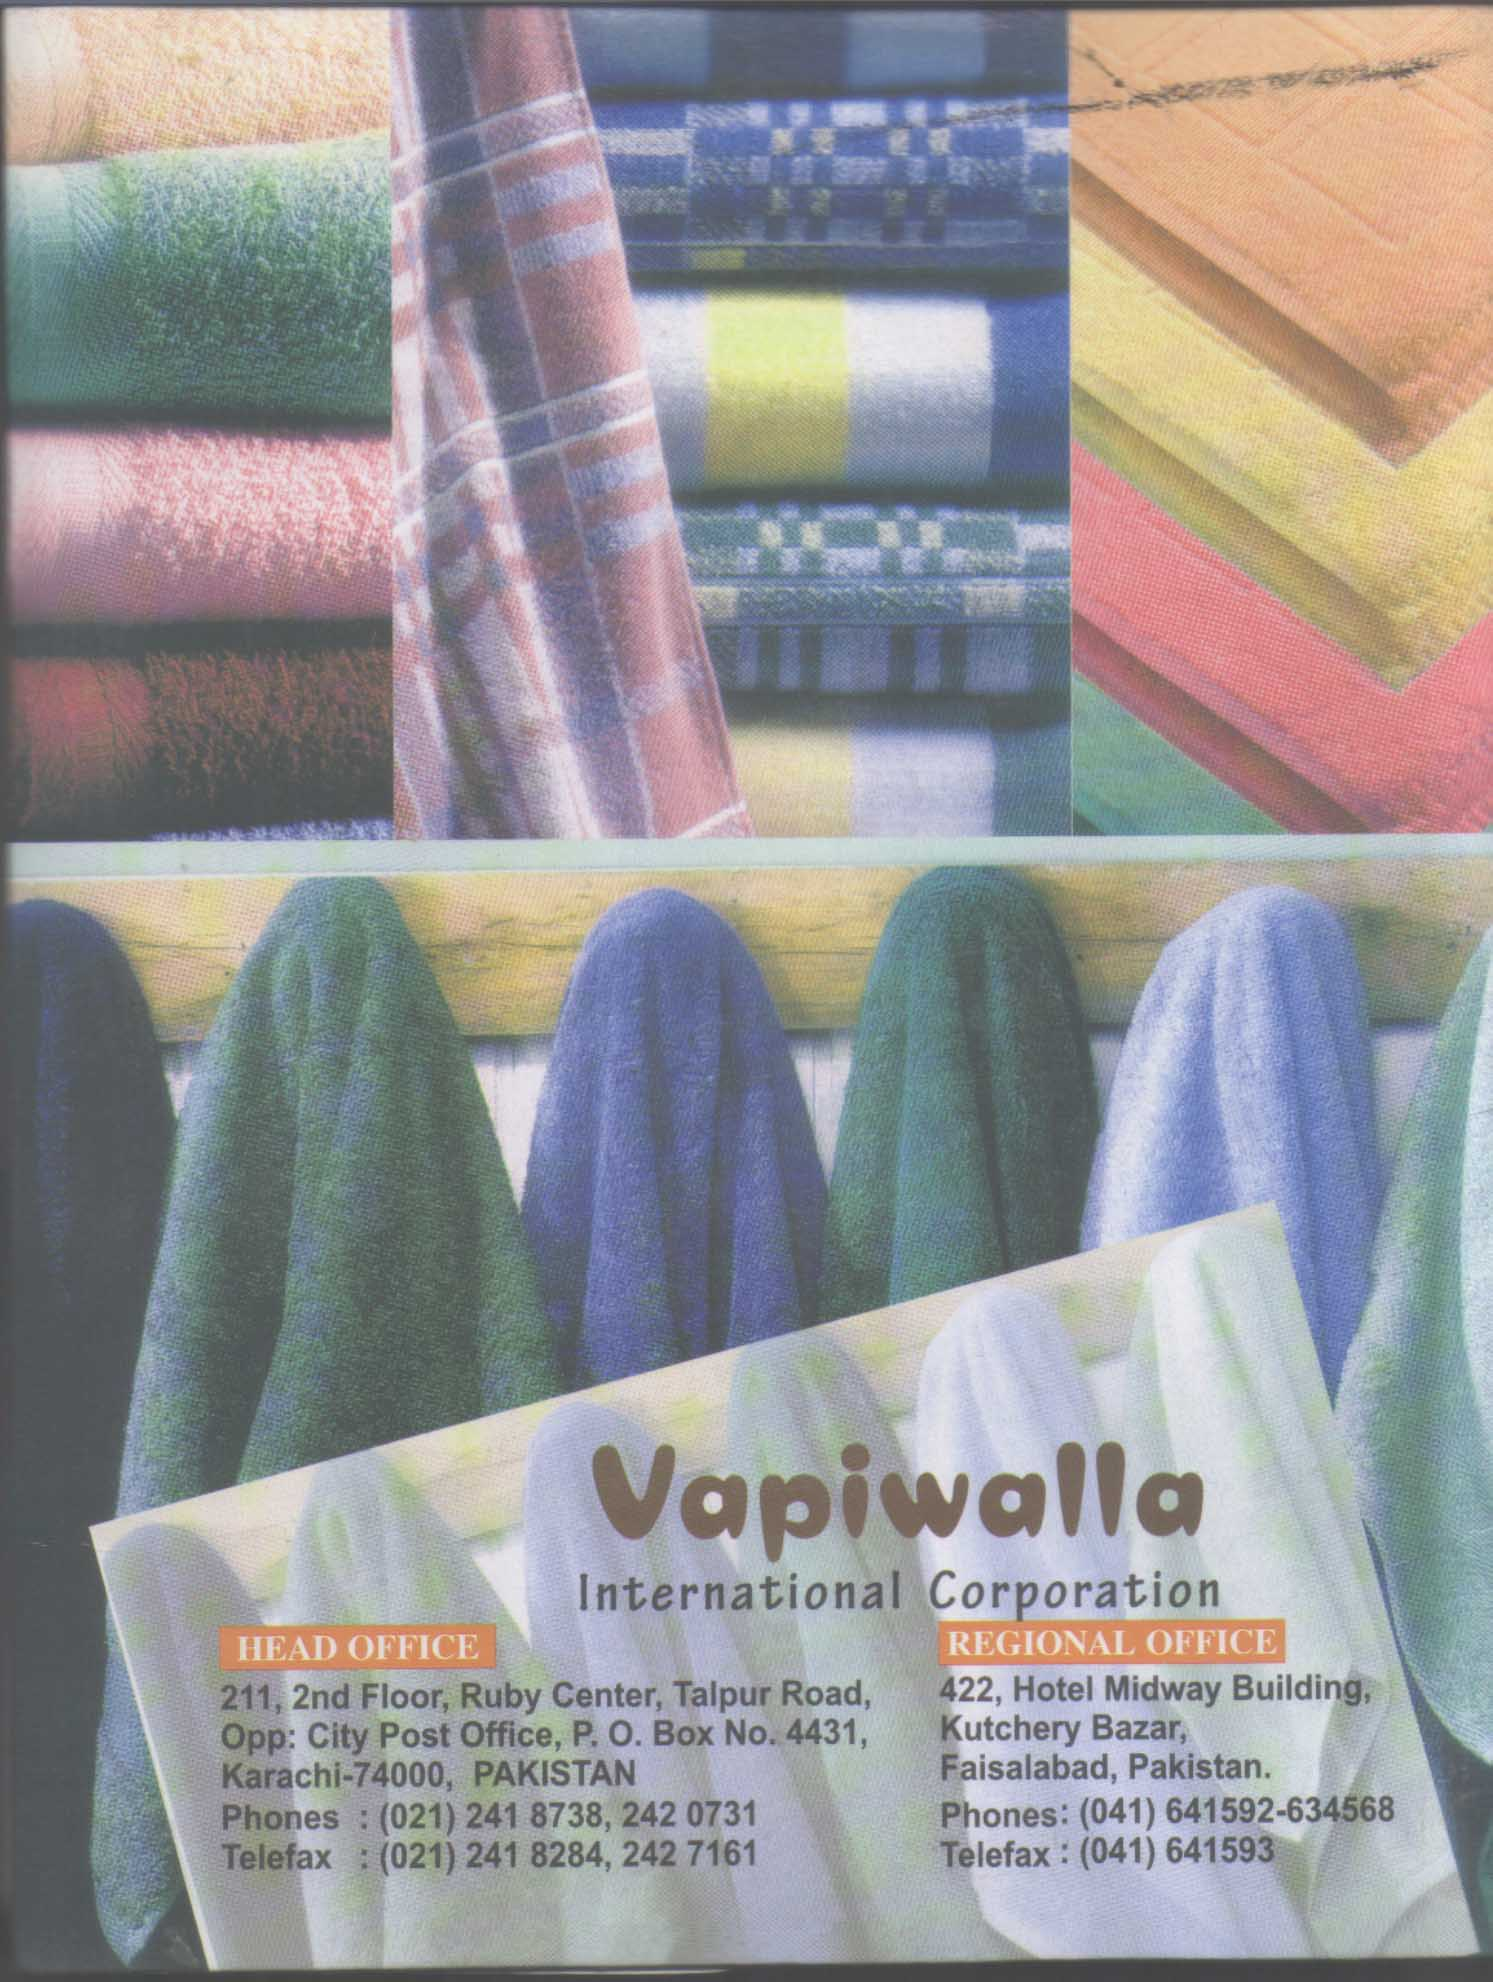 VAPIWALLA INTERNATIONAL CORPORATION logo